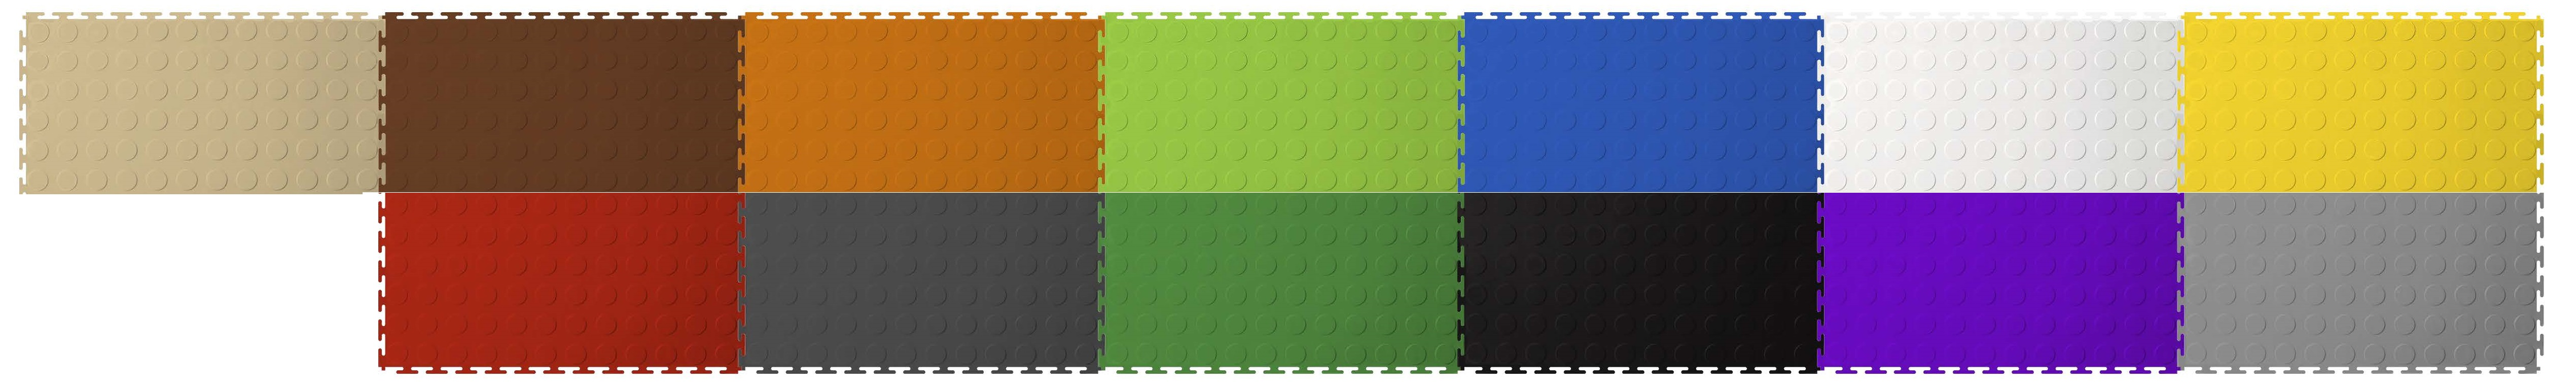 coin tile colors